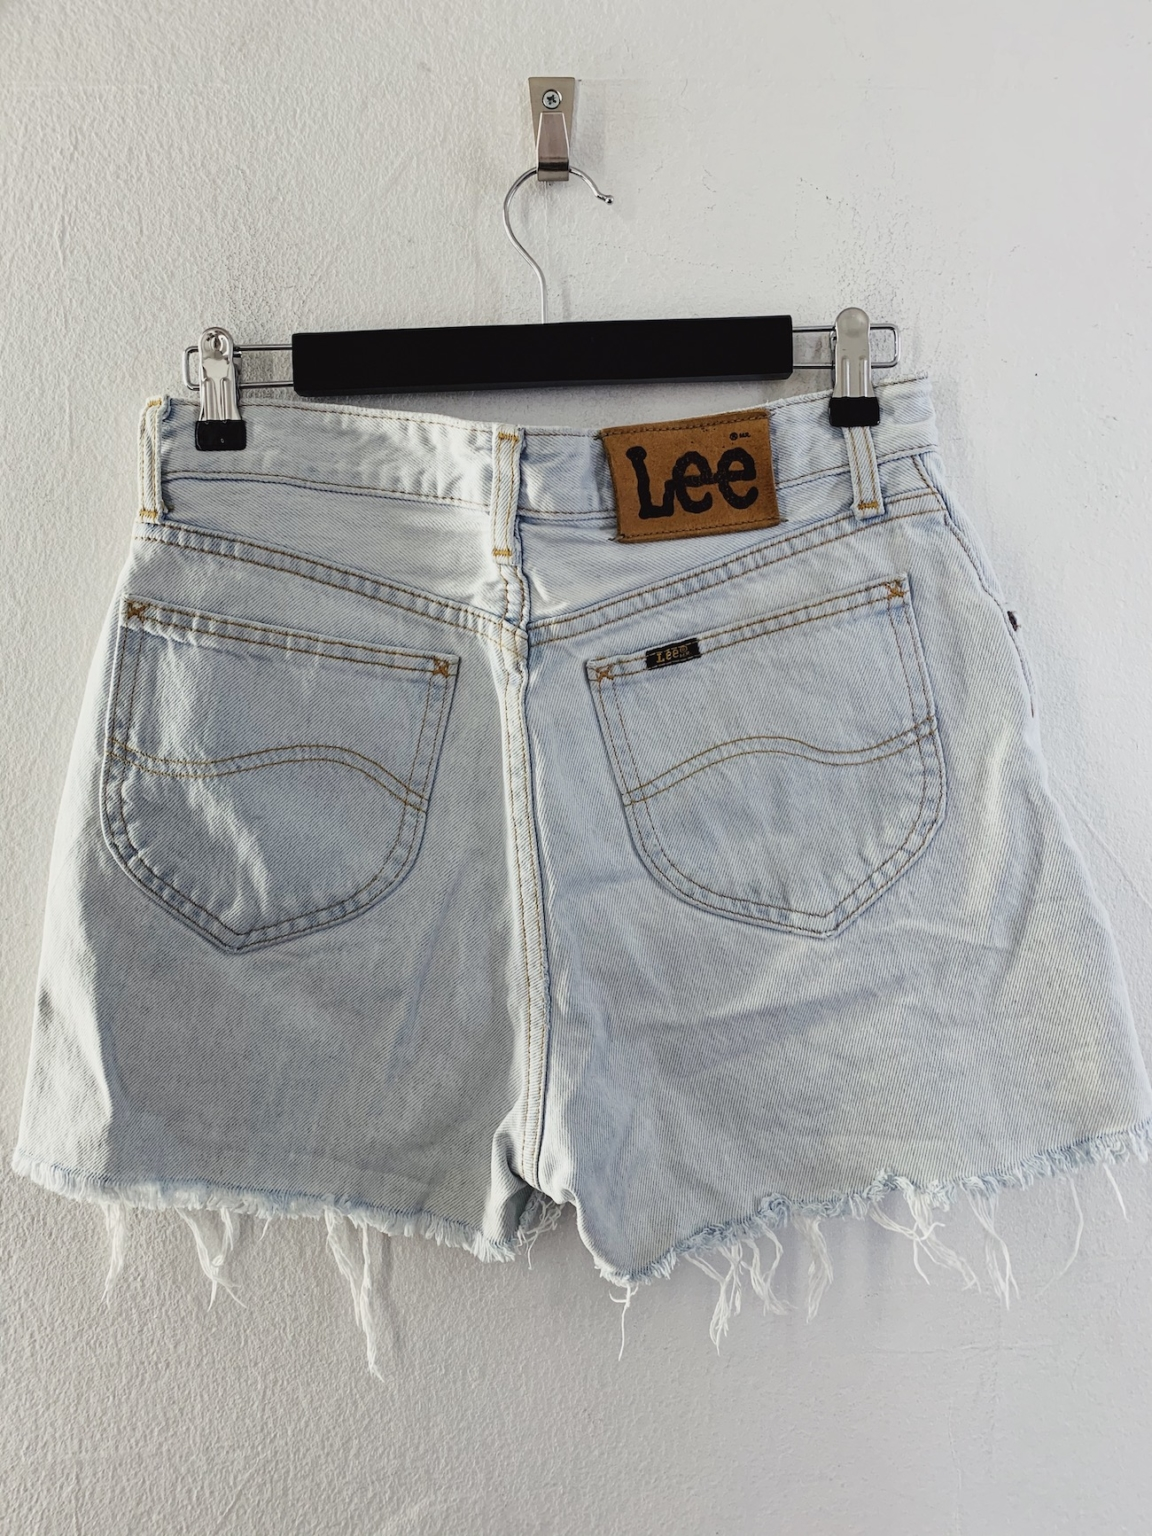 Ecosphere Vintage - Light Denim Lee Cut-Offs